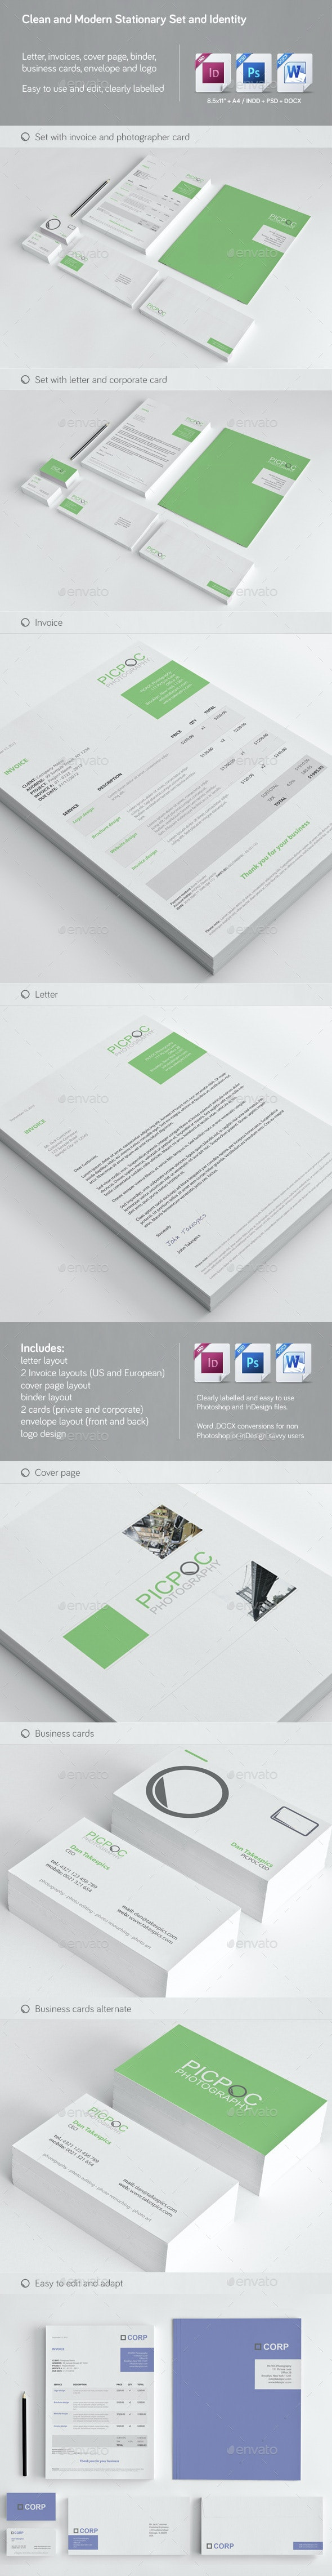 Clean & Modern Stationery, Invoice and Identity - Stationery Print Templates